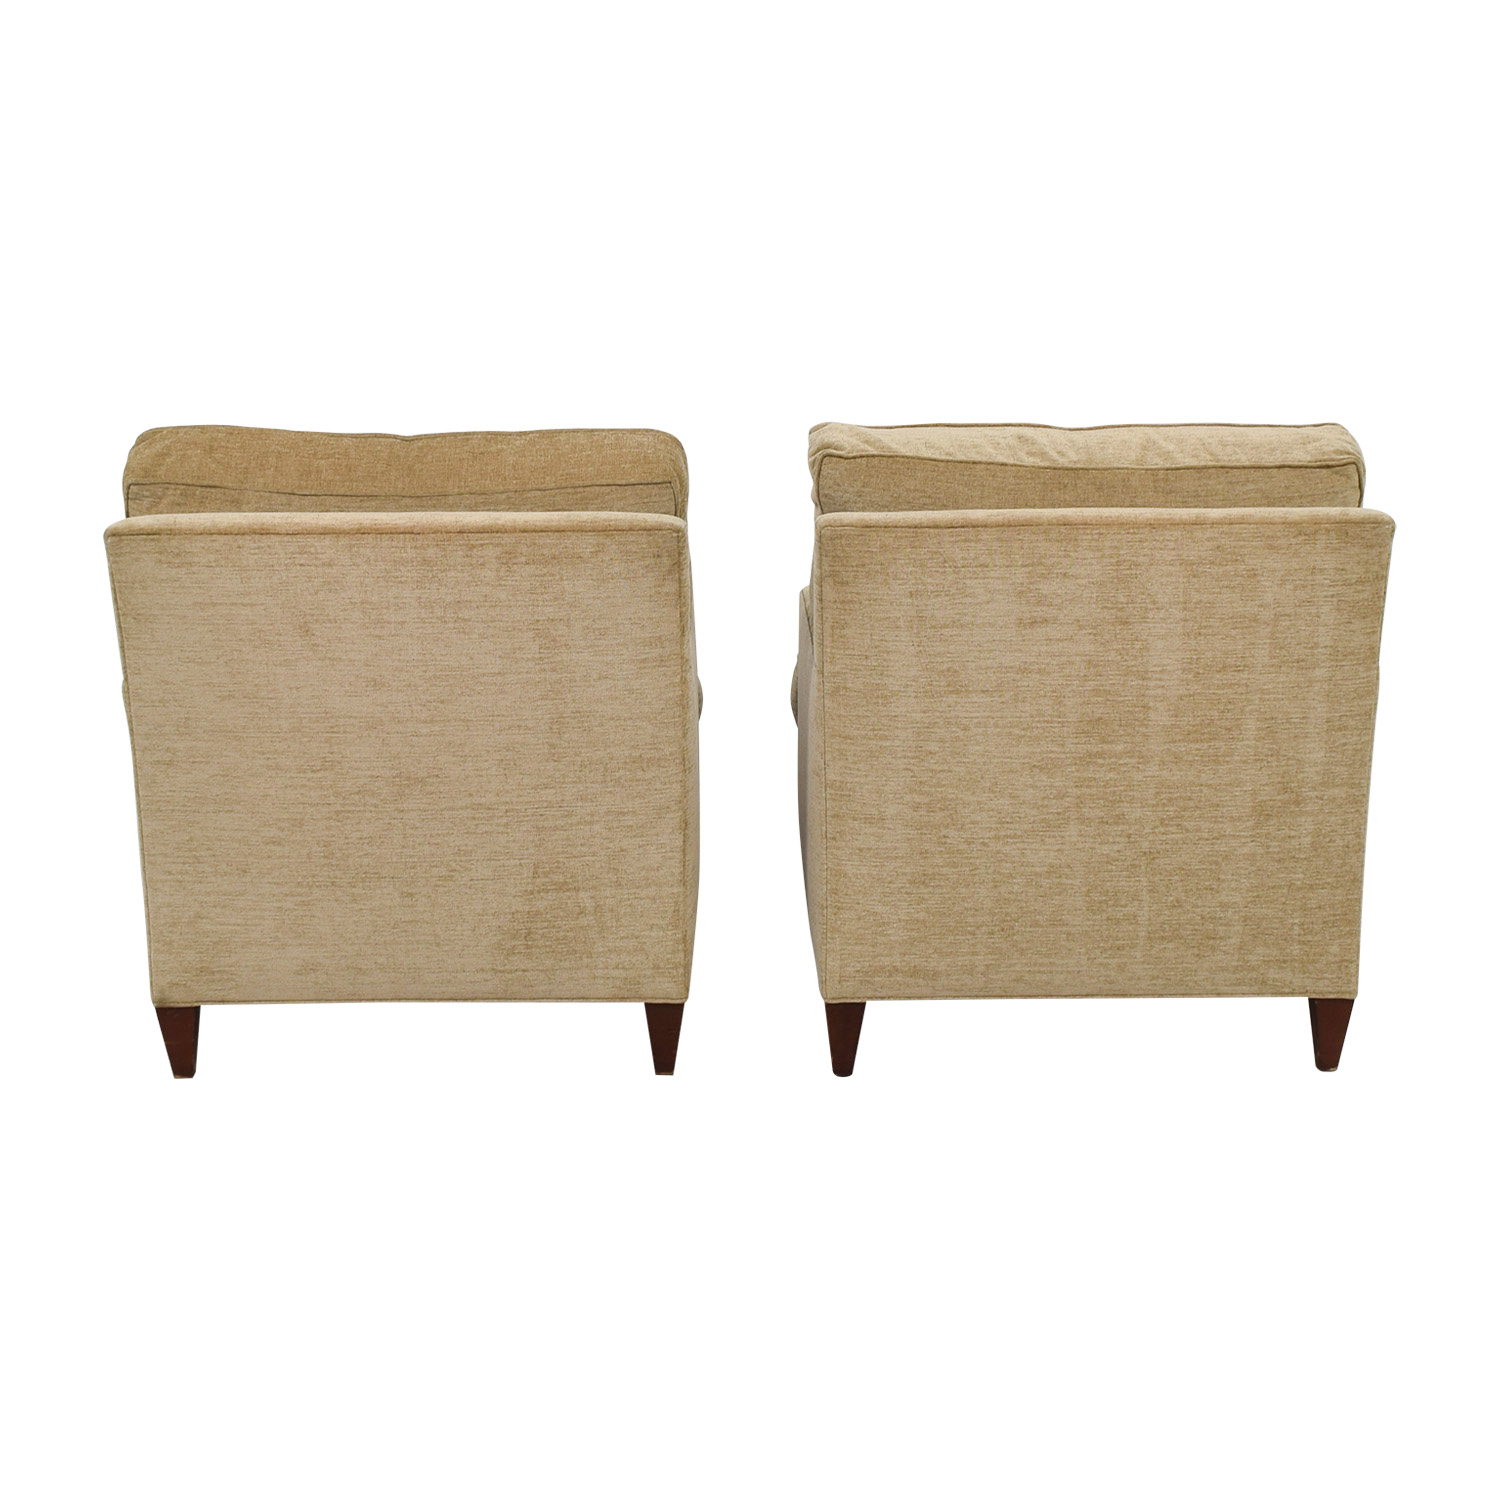 Hickory Chair Hickory Chair Beige Chenille Accent Chairs with Toss Pillows dimensions